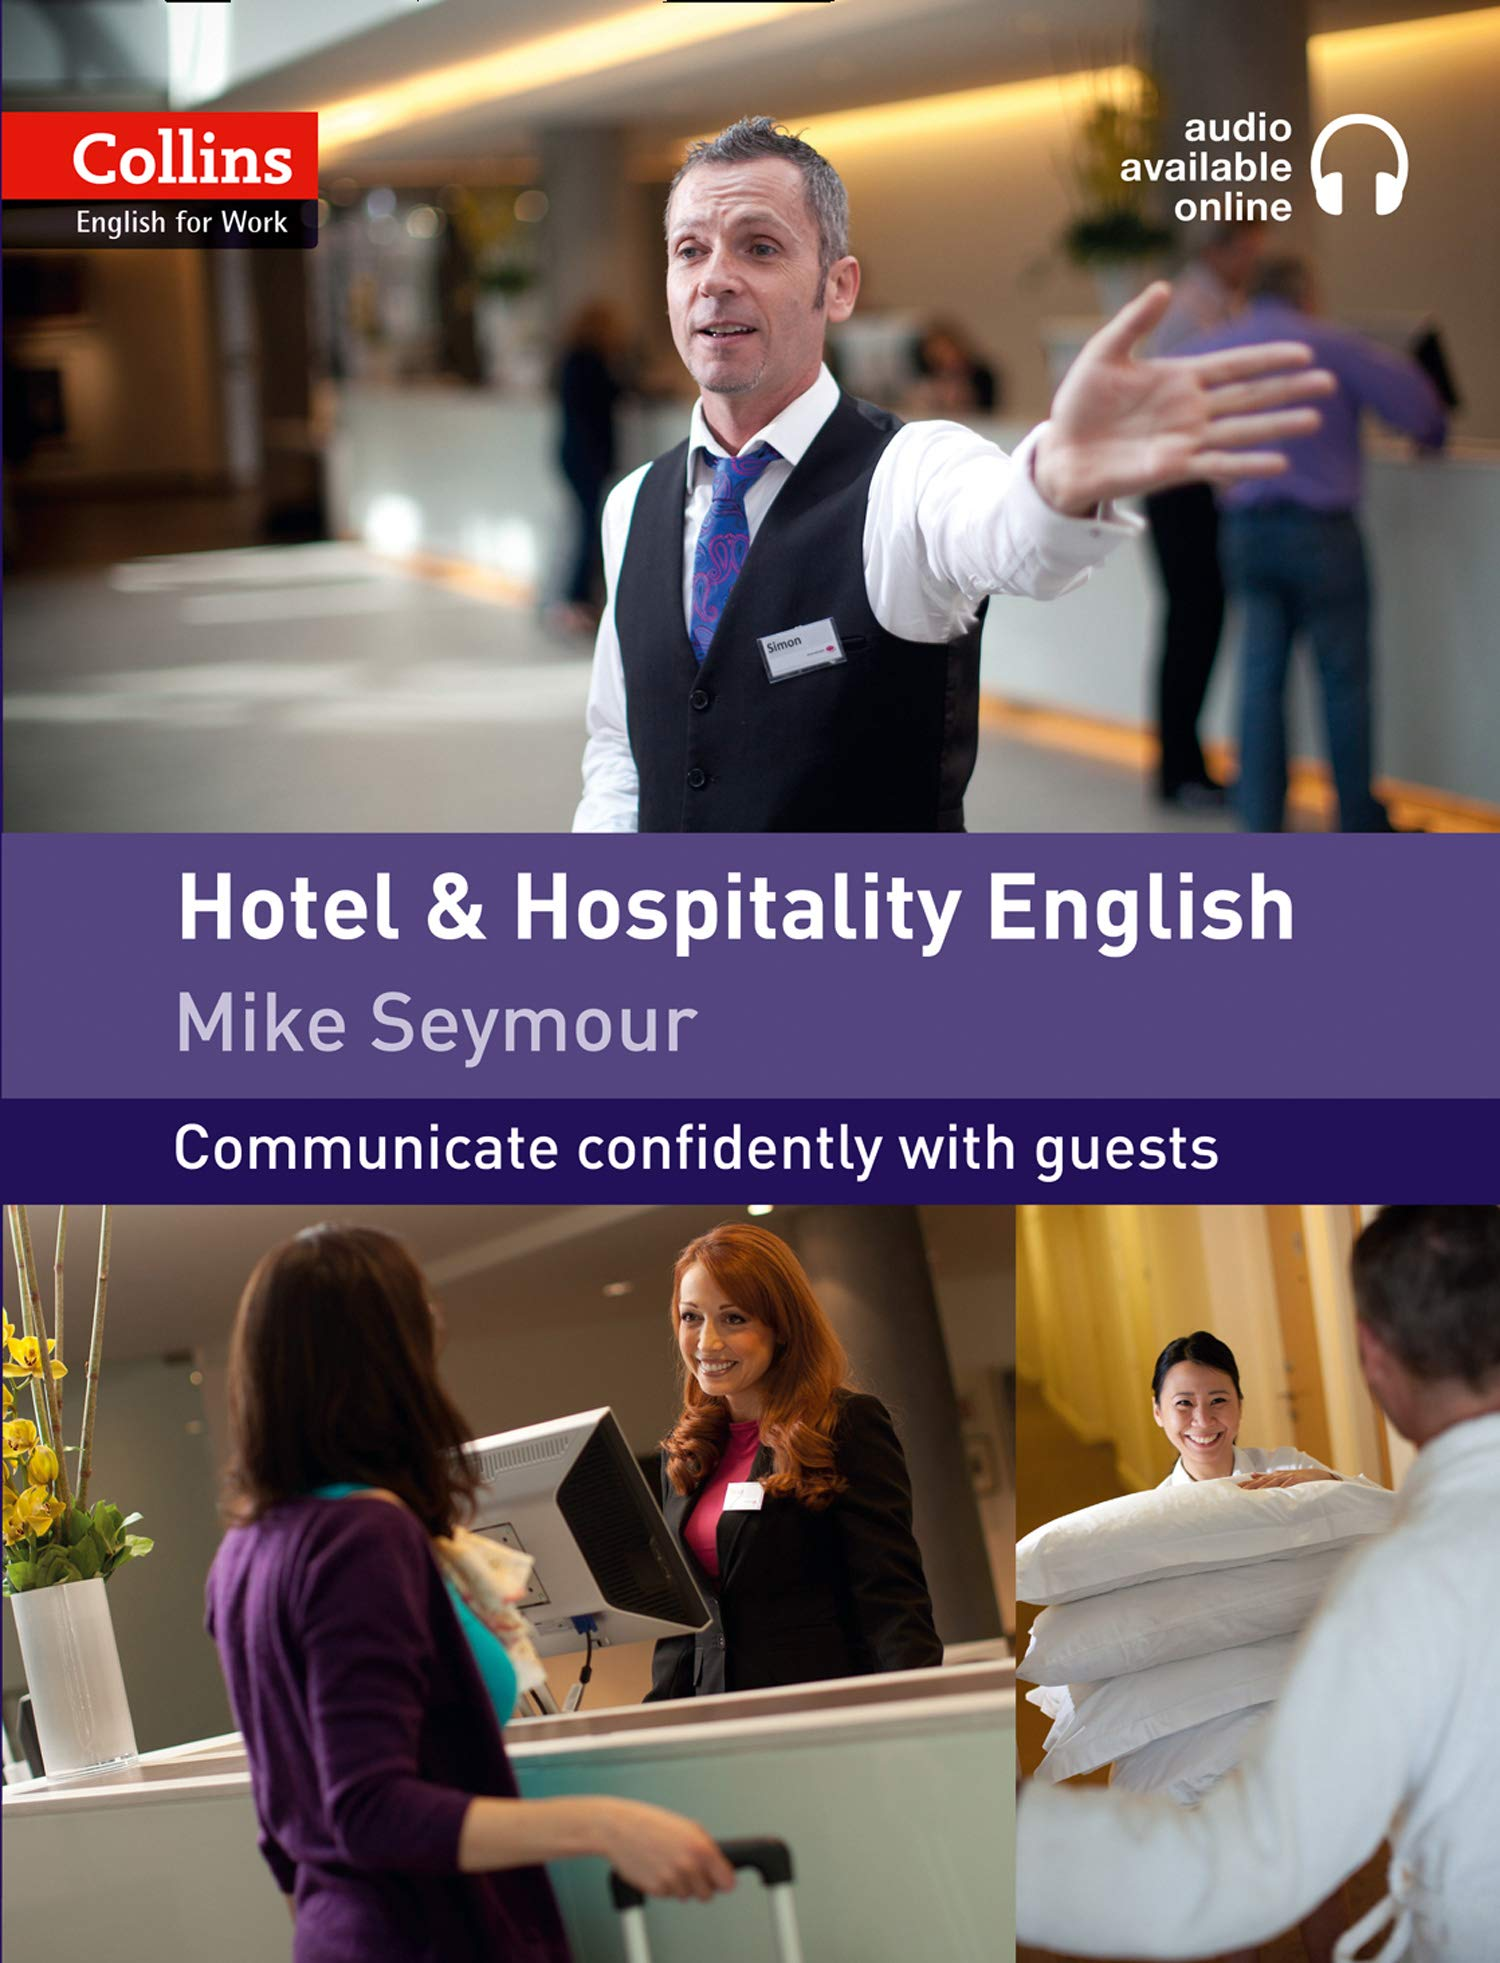 Tourism ,hotel ,hospitality ,Reception , Guess Relations